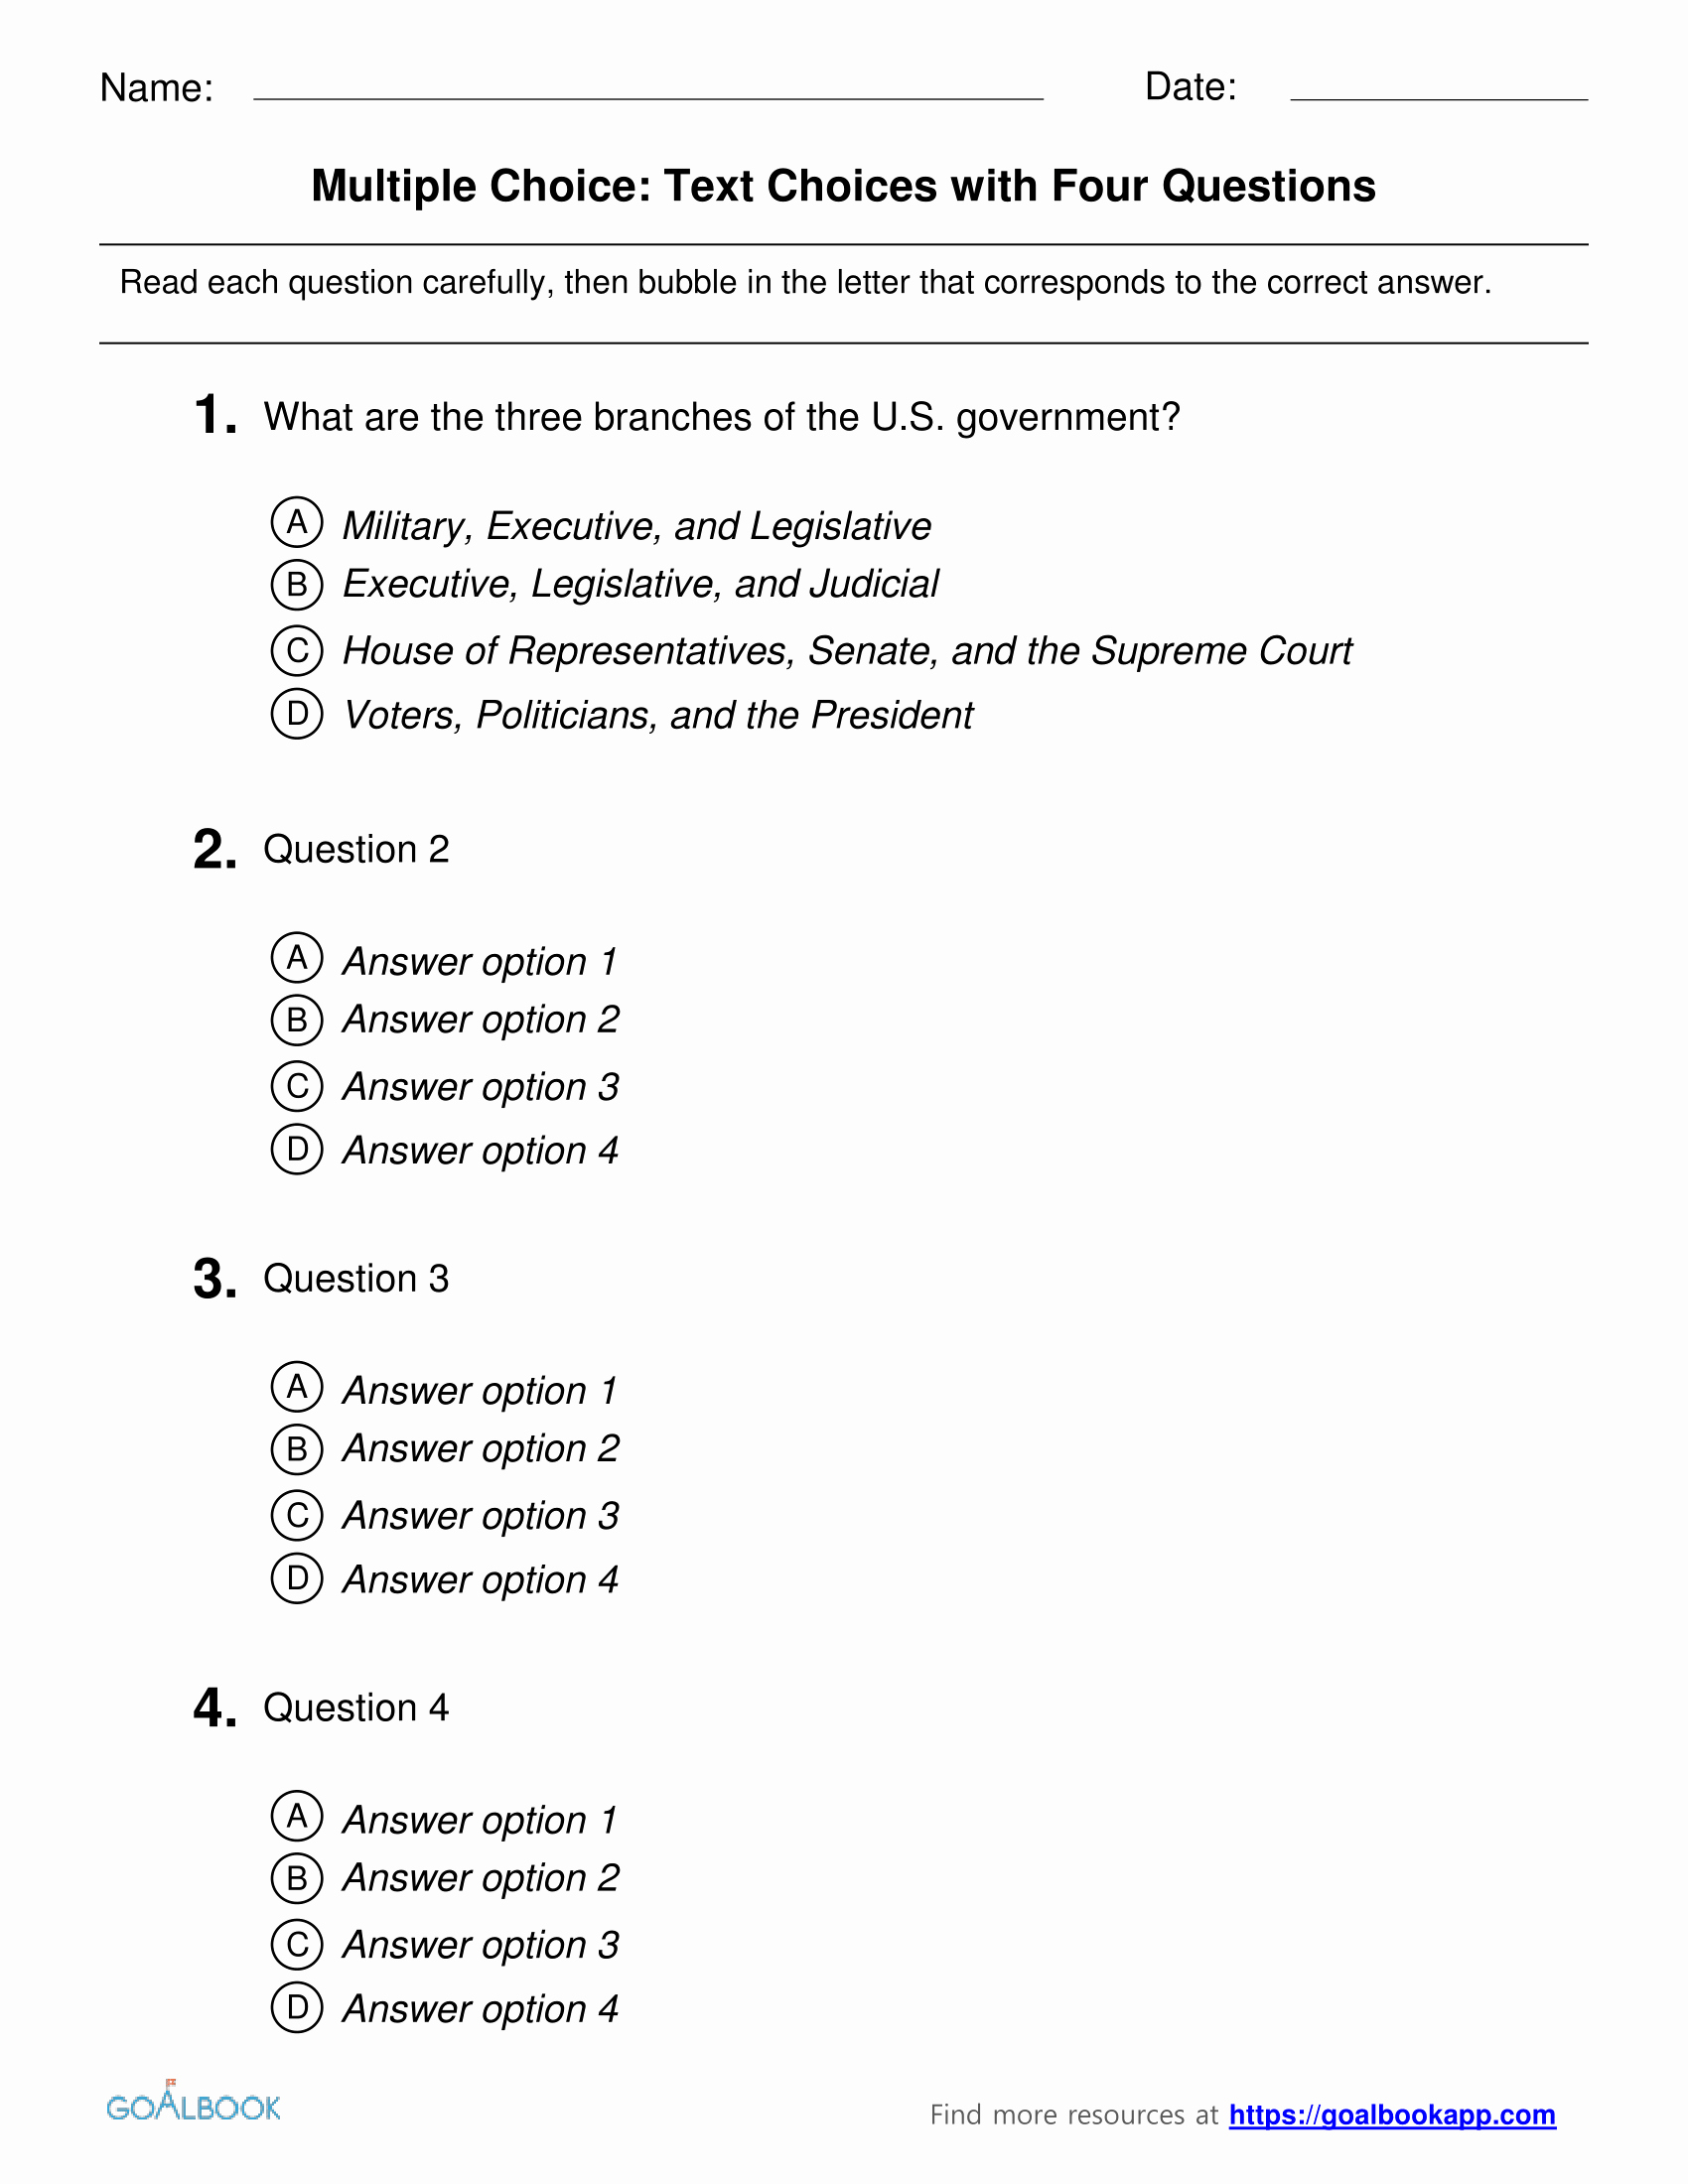 Questions and Answers Template Elegant Multiple Choice